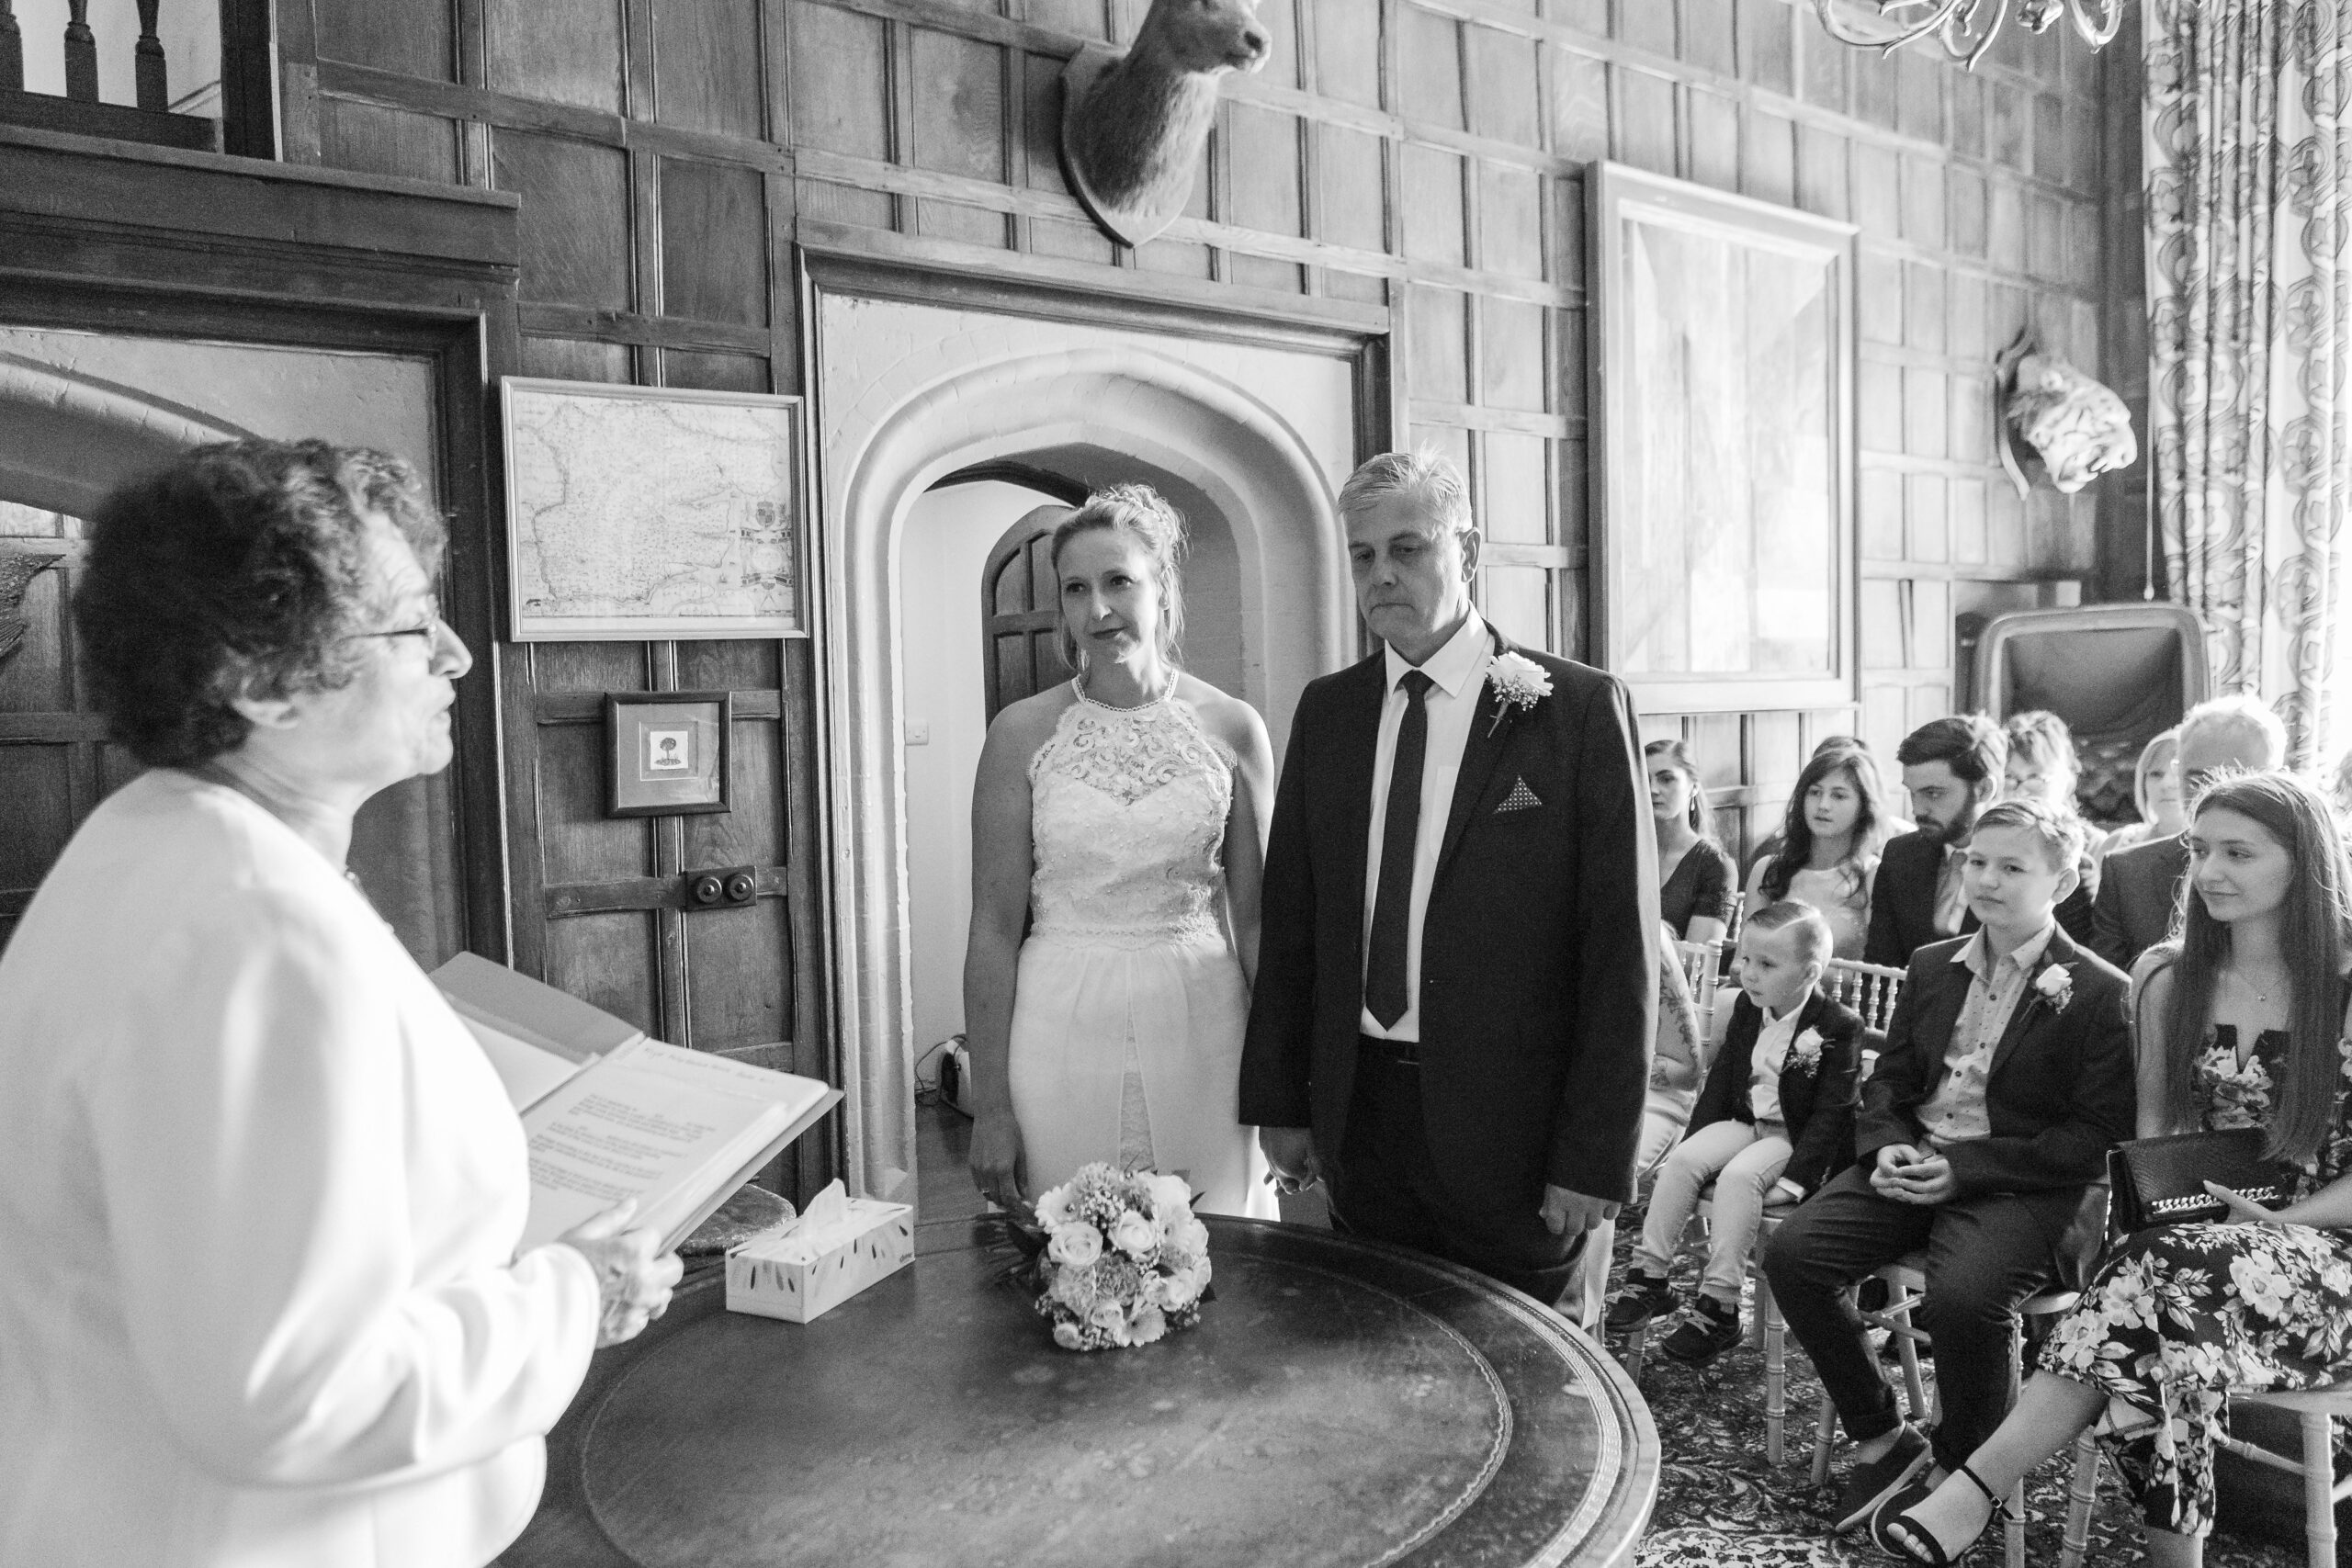 The registrar, bride and groom during the ceremony